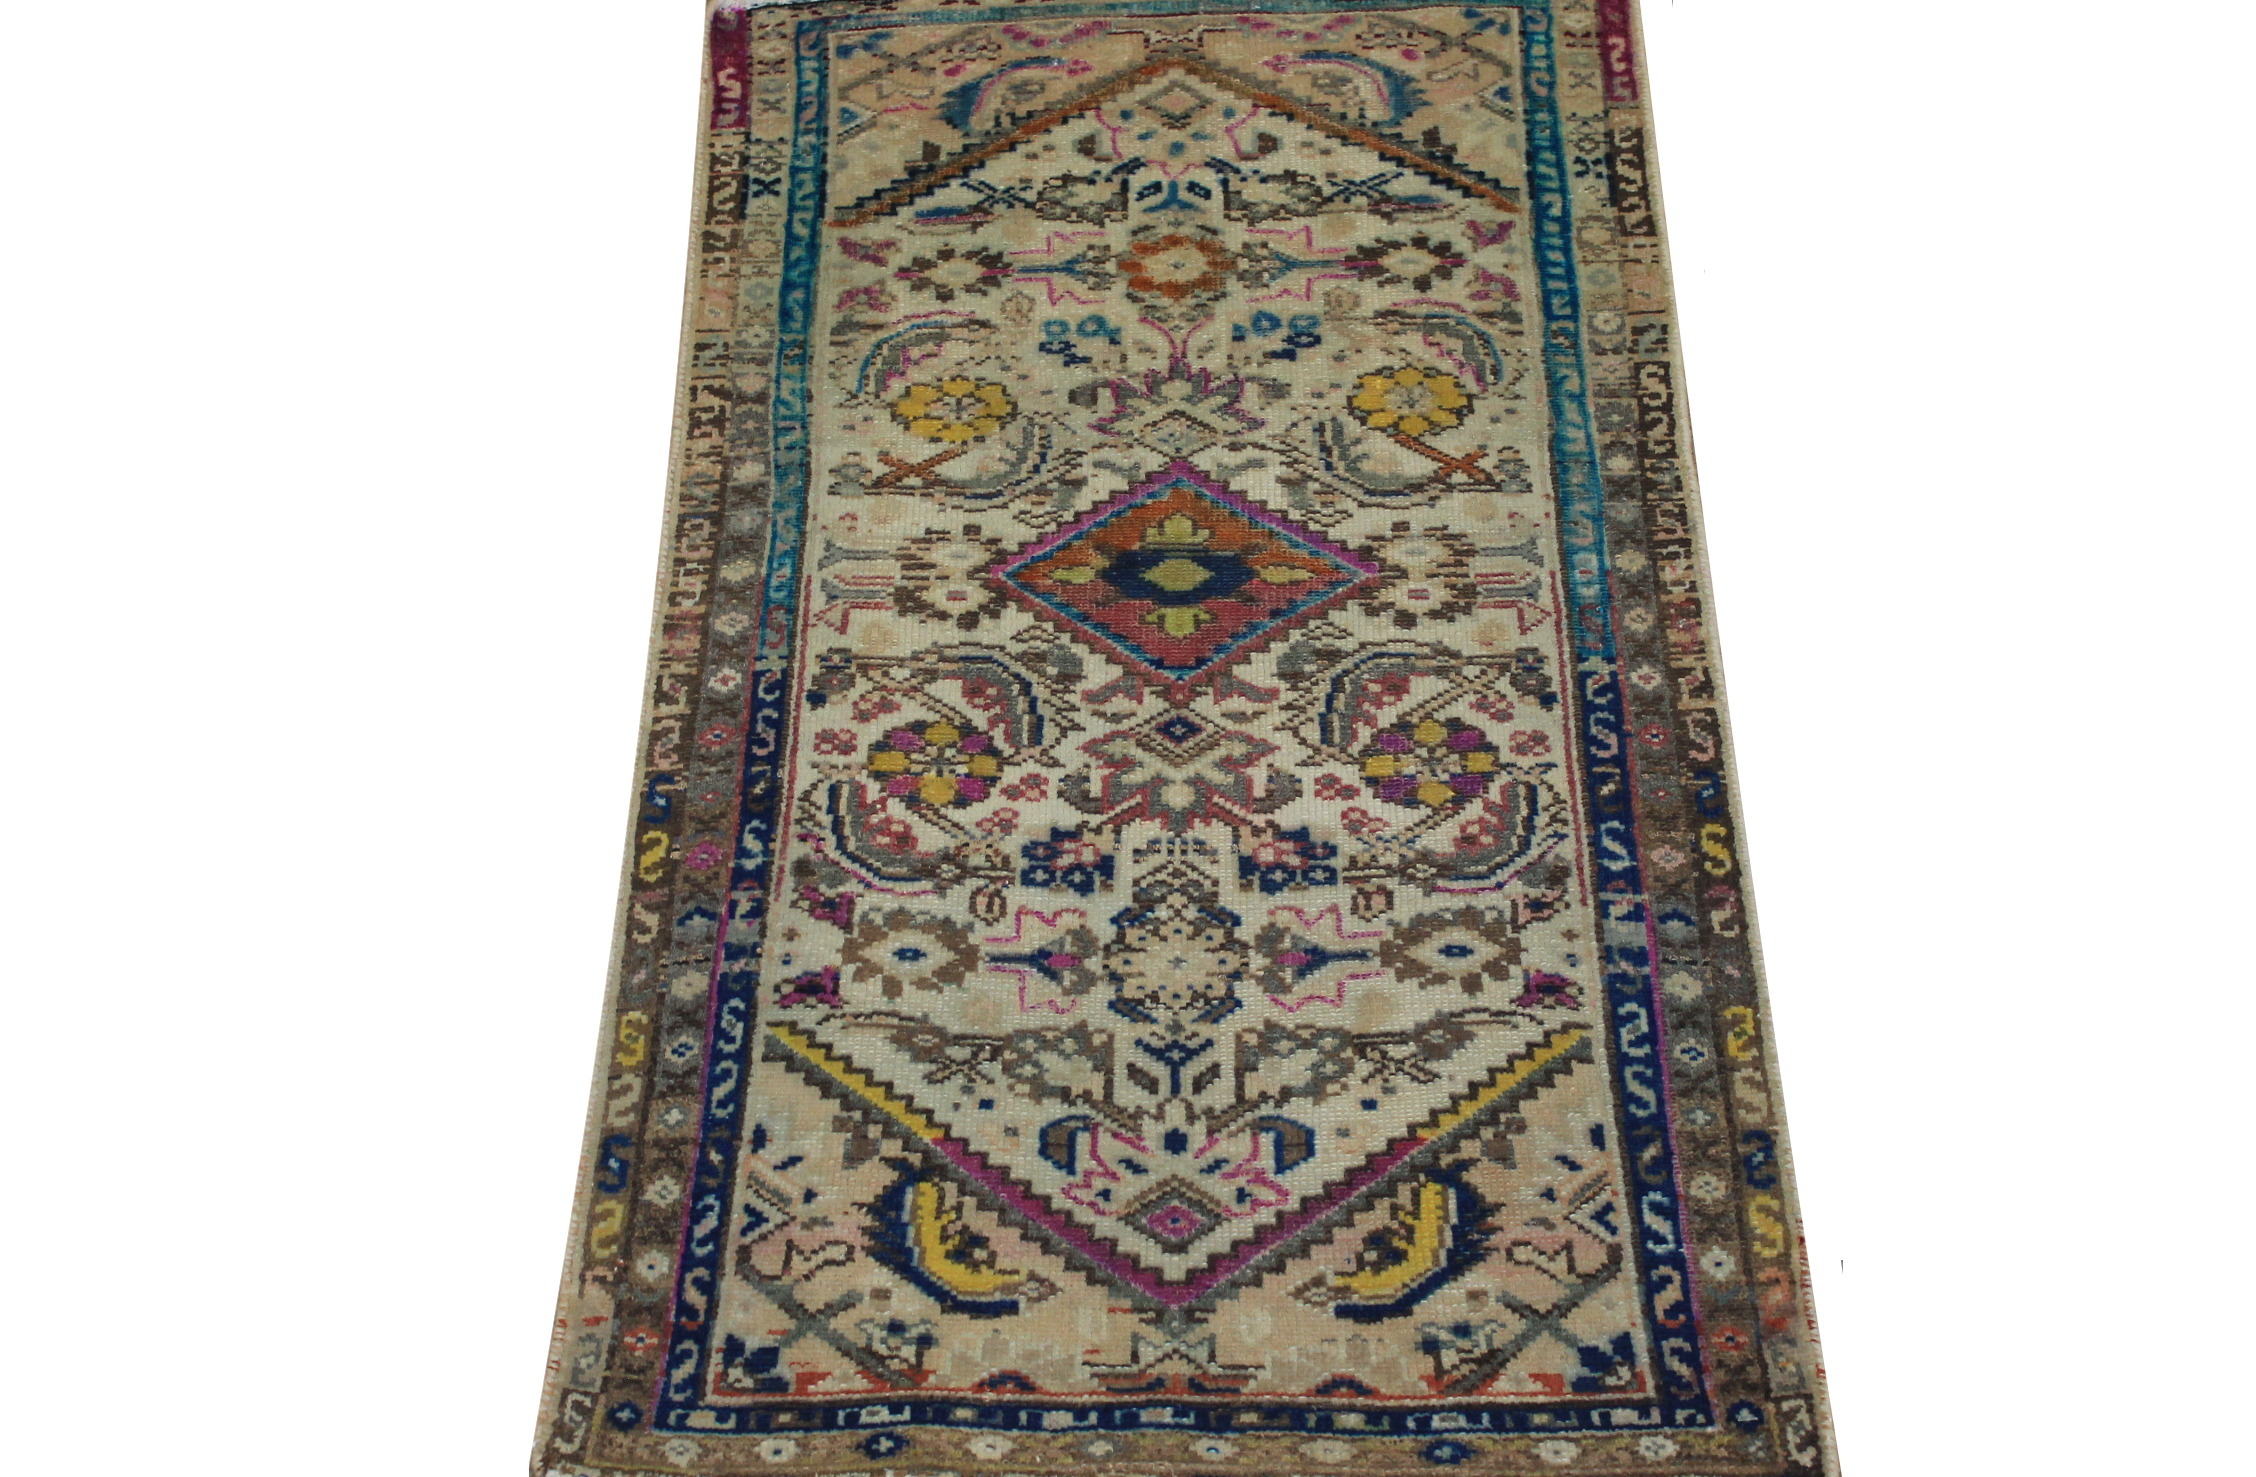 2X4 Vintage Hand Knotted Wool Area Rug - MR024445